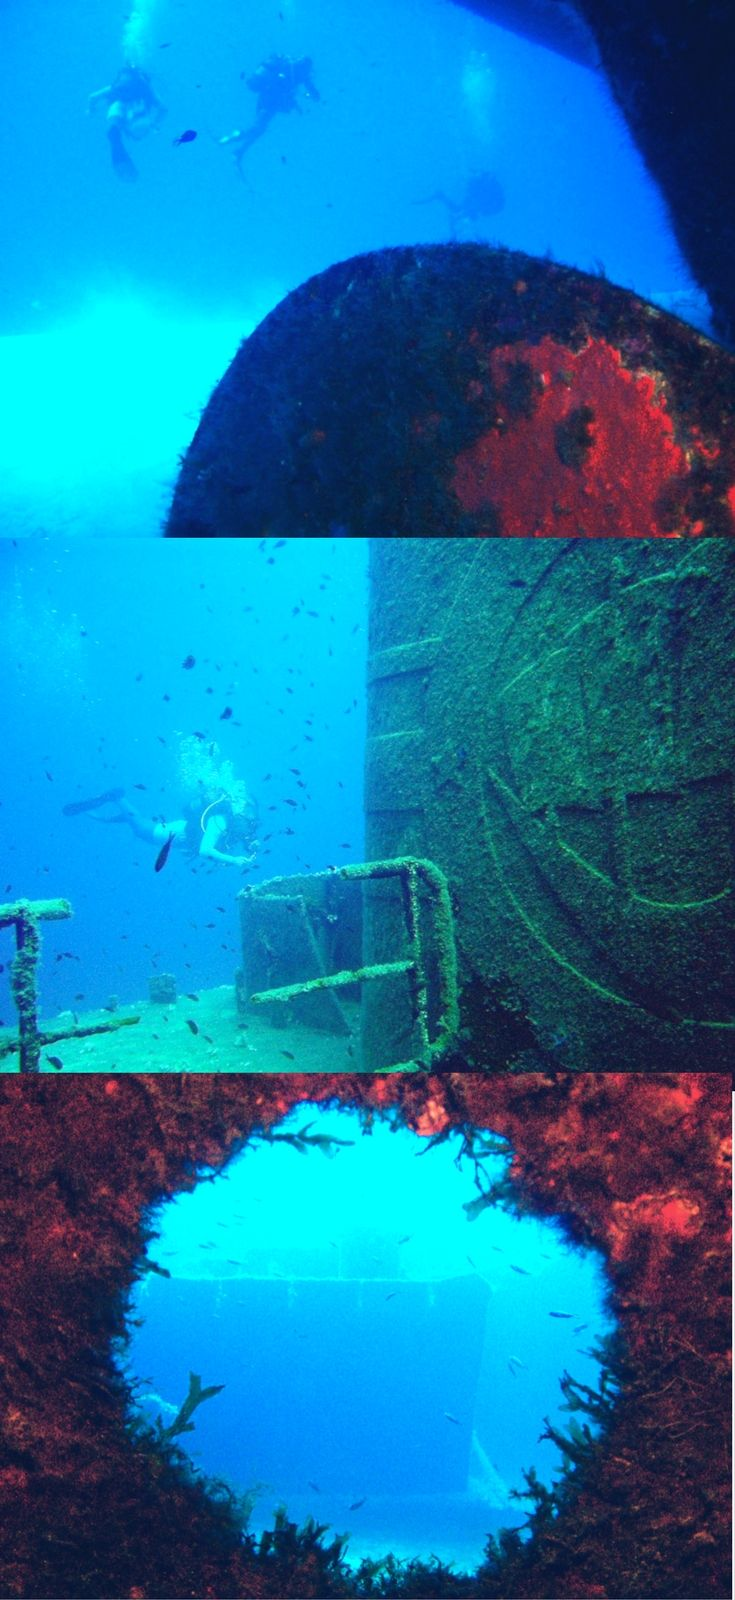 Scuba Diving UM El Faroud shipwreck near blue grotto - Malta: wreck diving paradise in South Europe - World Adventure Divers - Read more on https://worldadventuredivers.com/2016/09/05/malta-wreck-diving-mediterranean-sea/